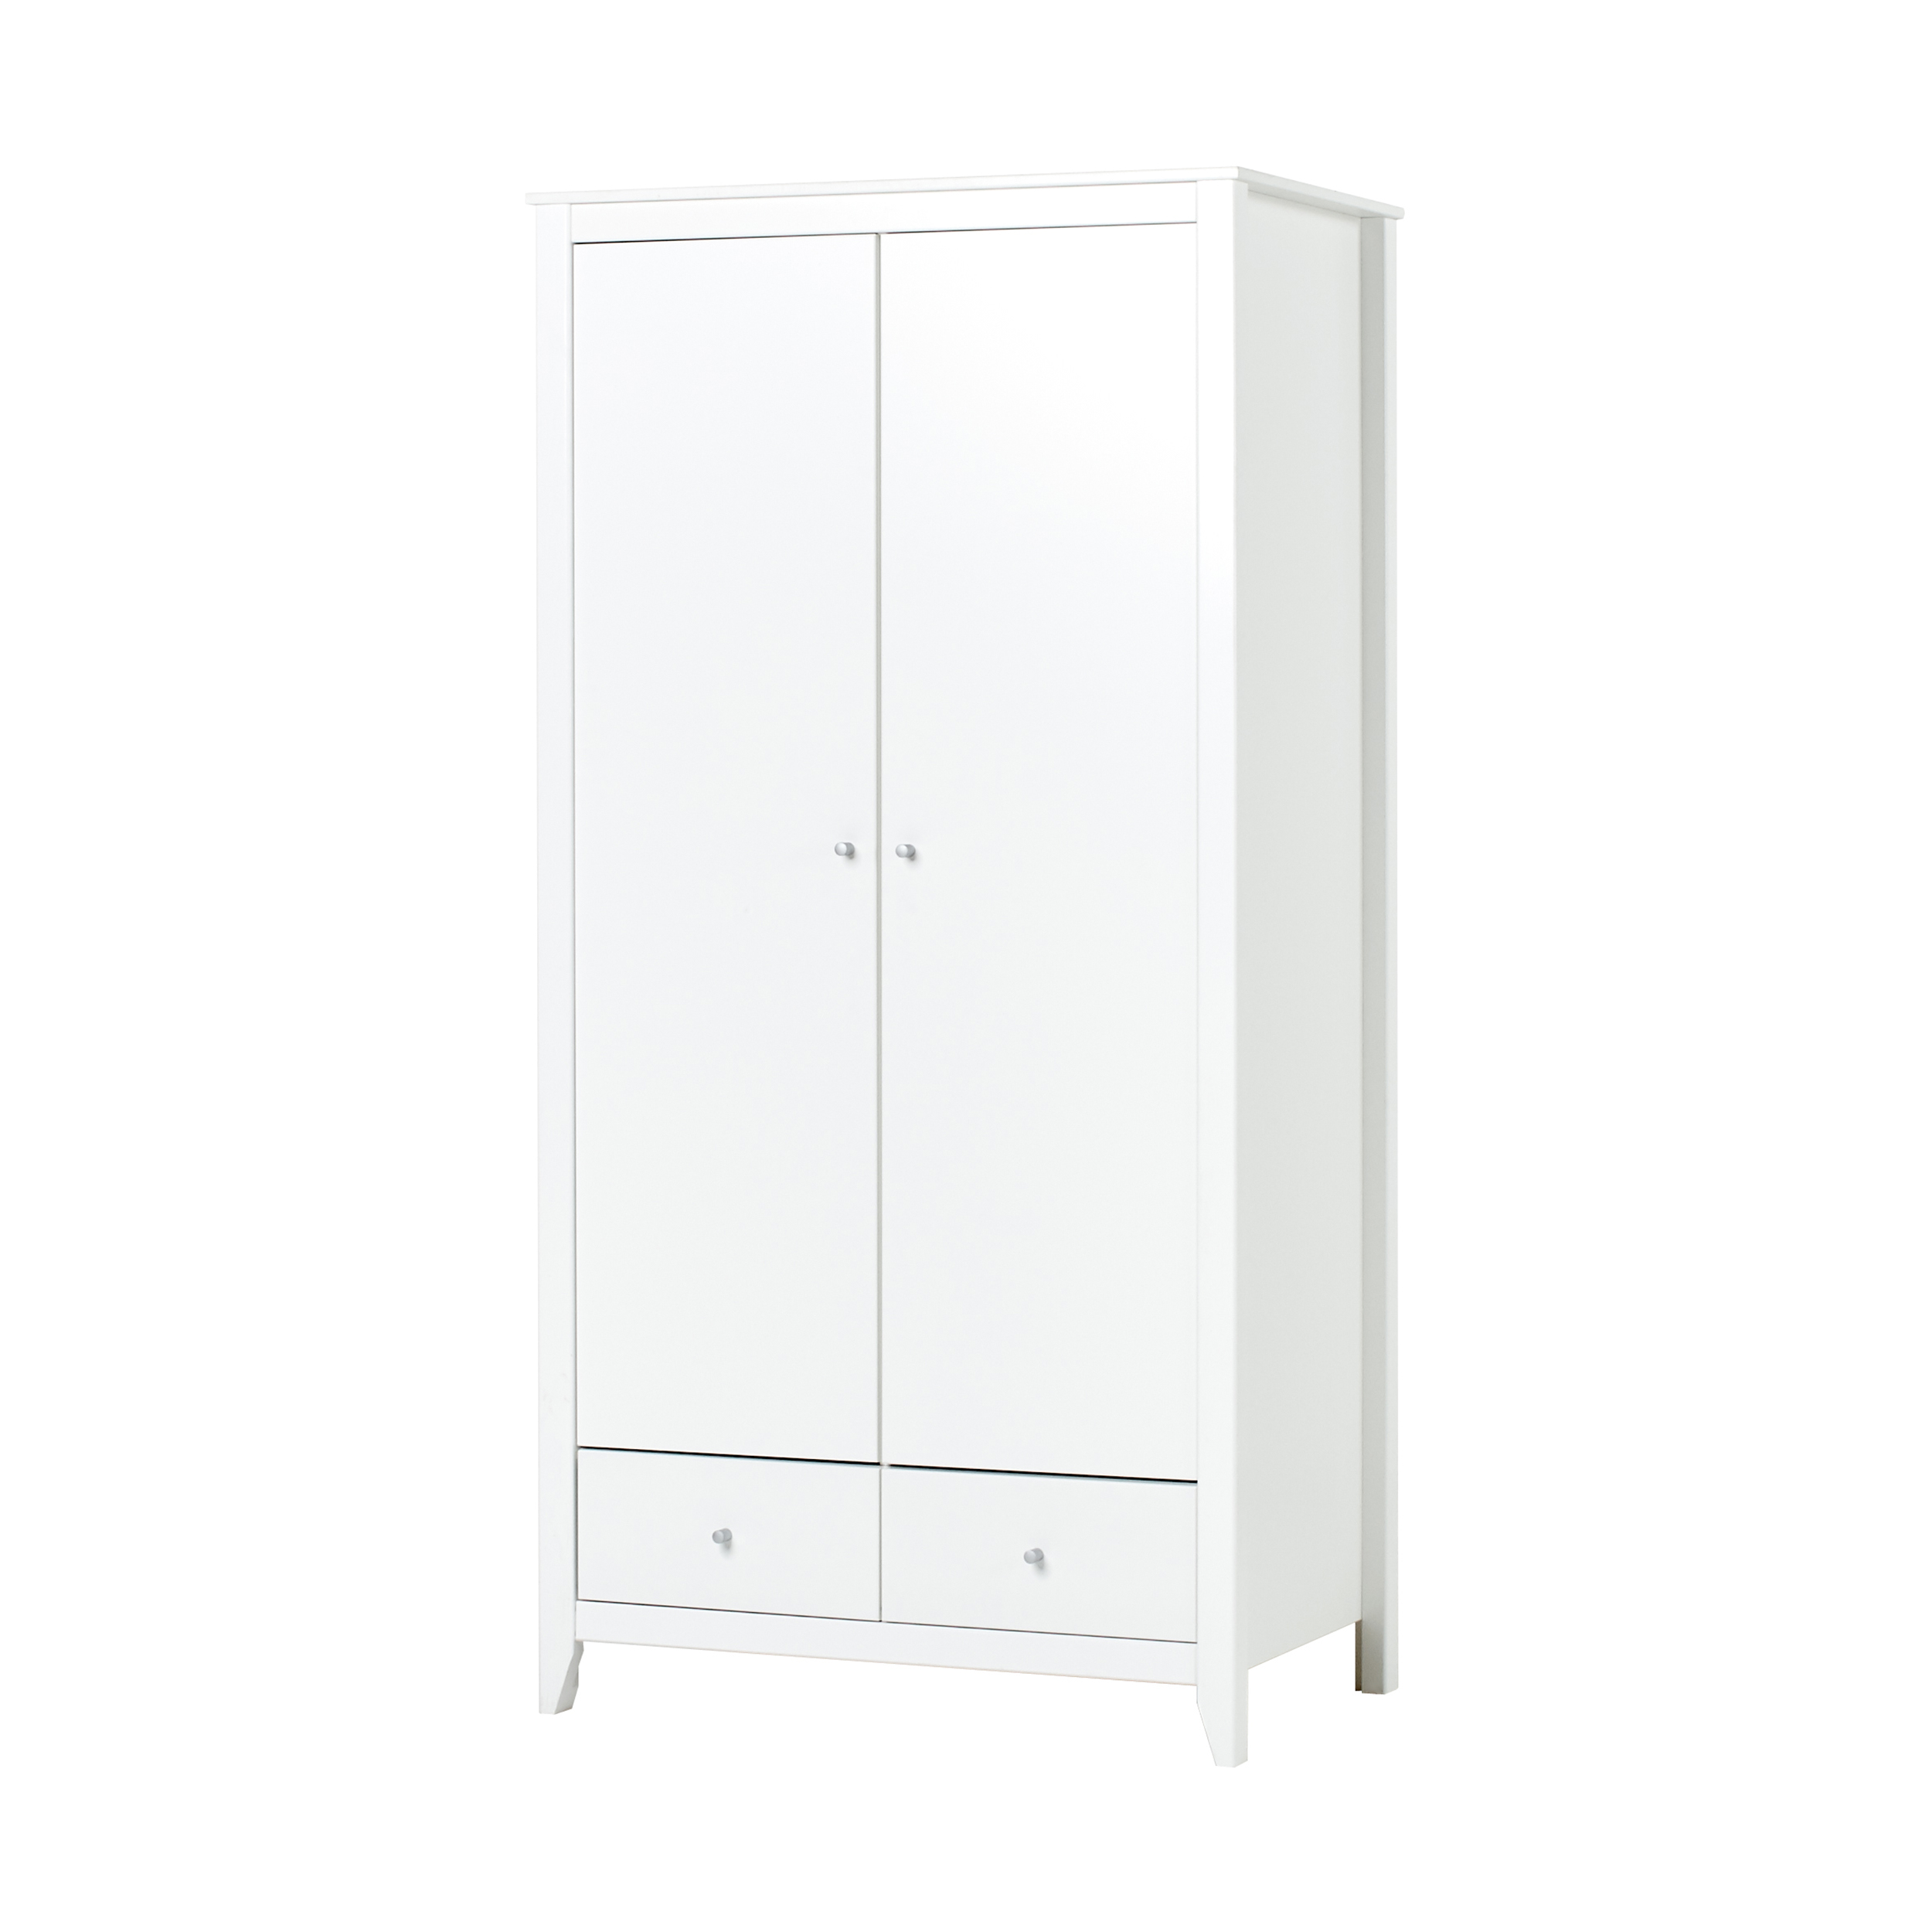 Hoppekids - Wardrobe w. 2 Doors & 2 Drawers